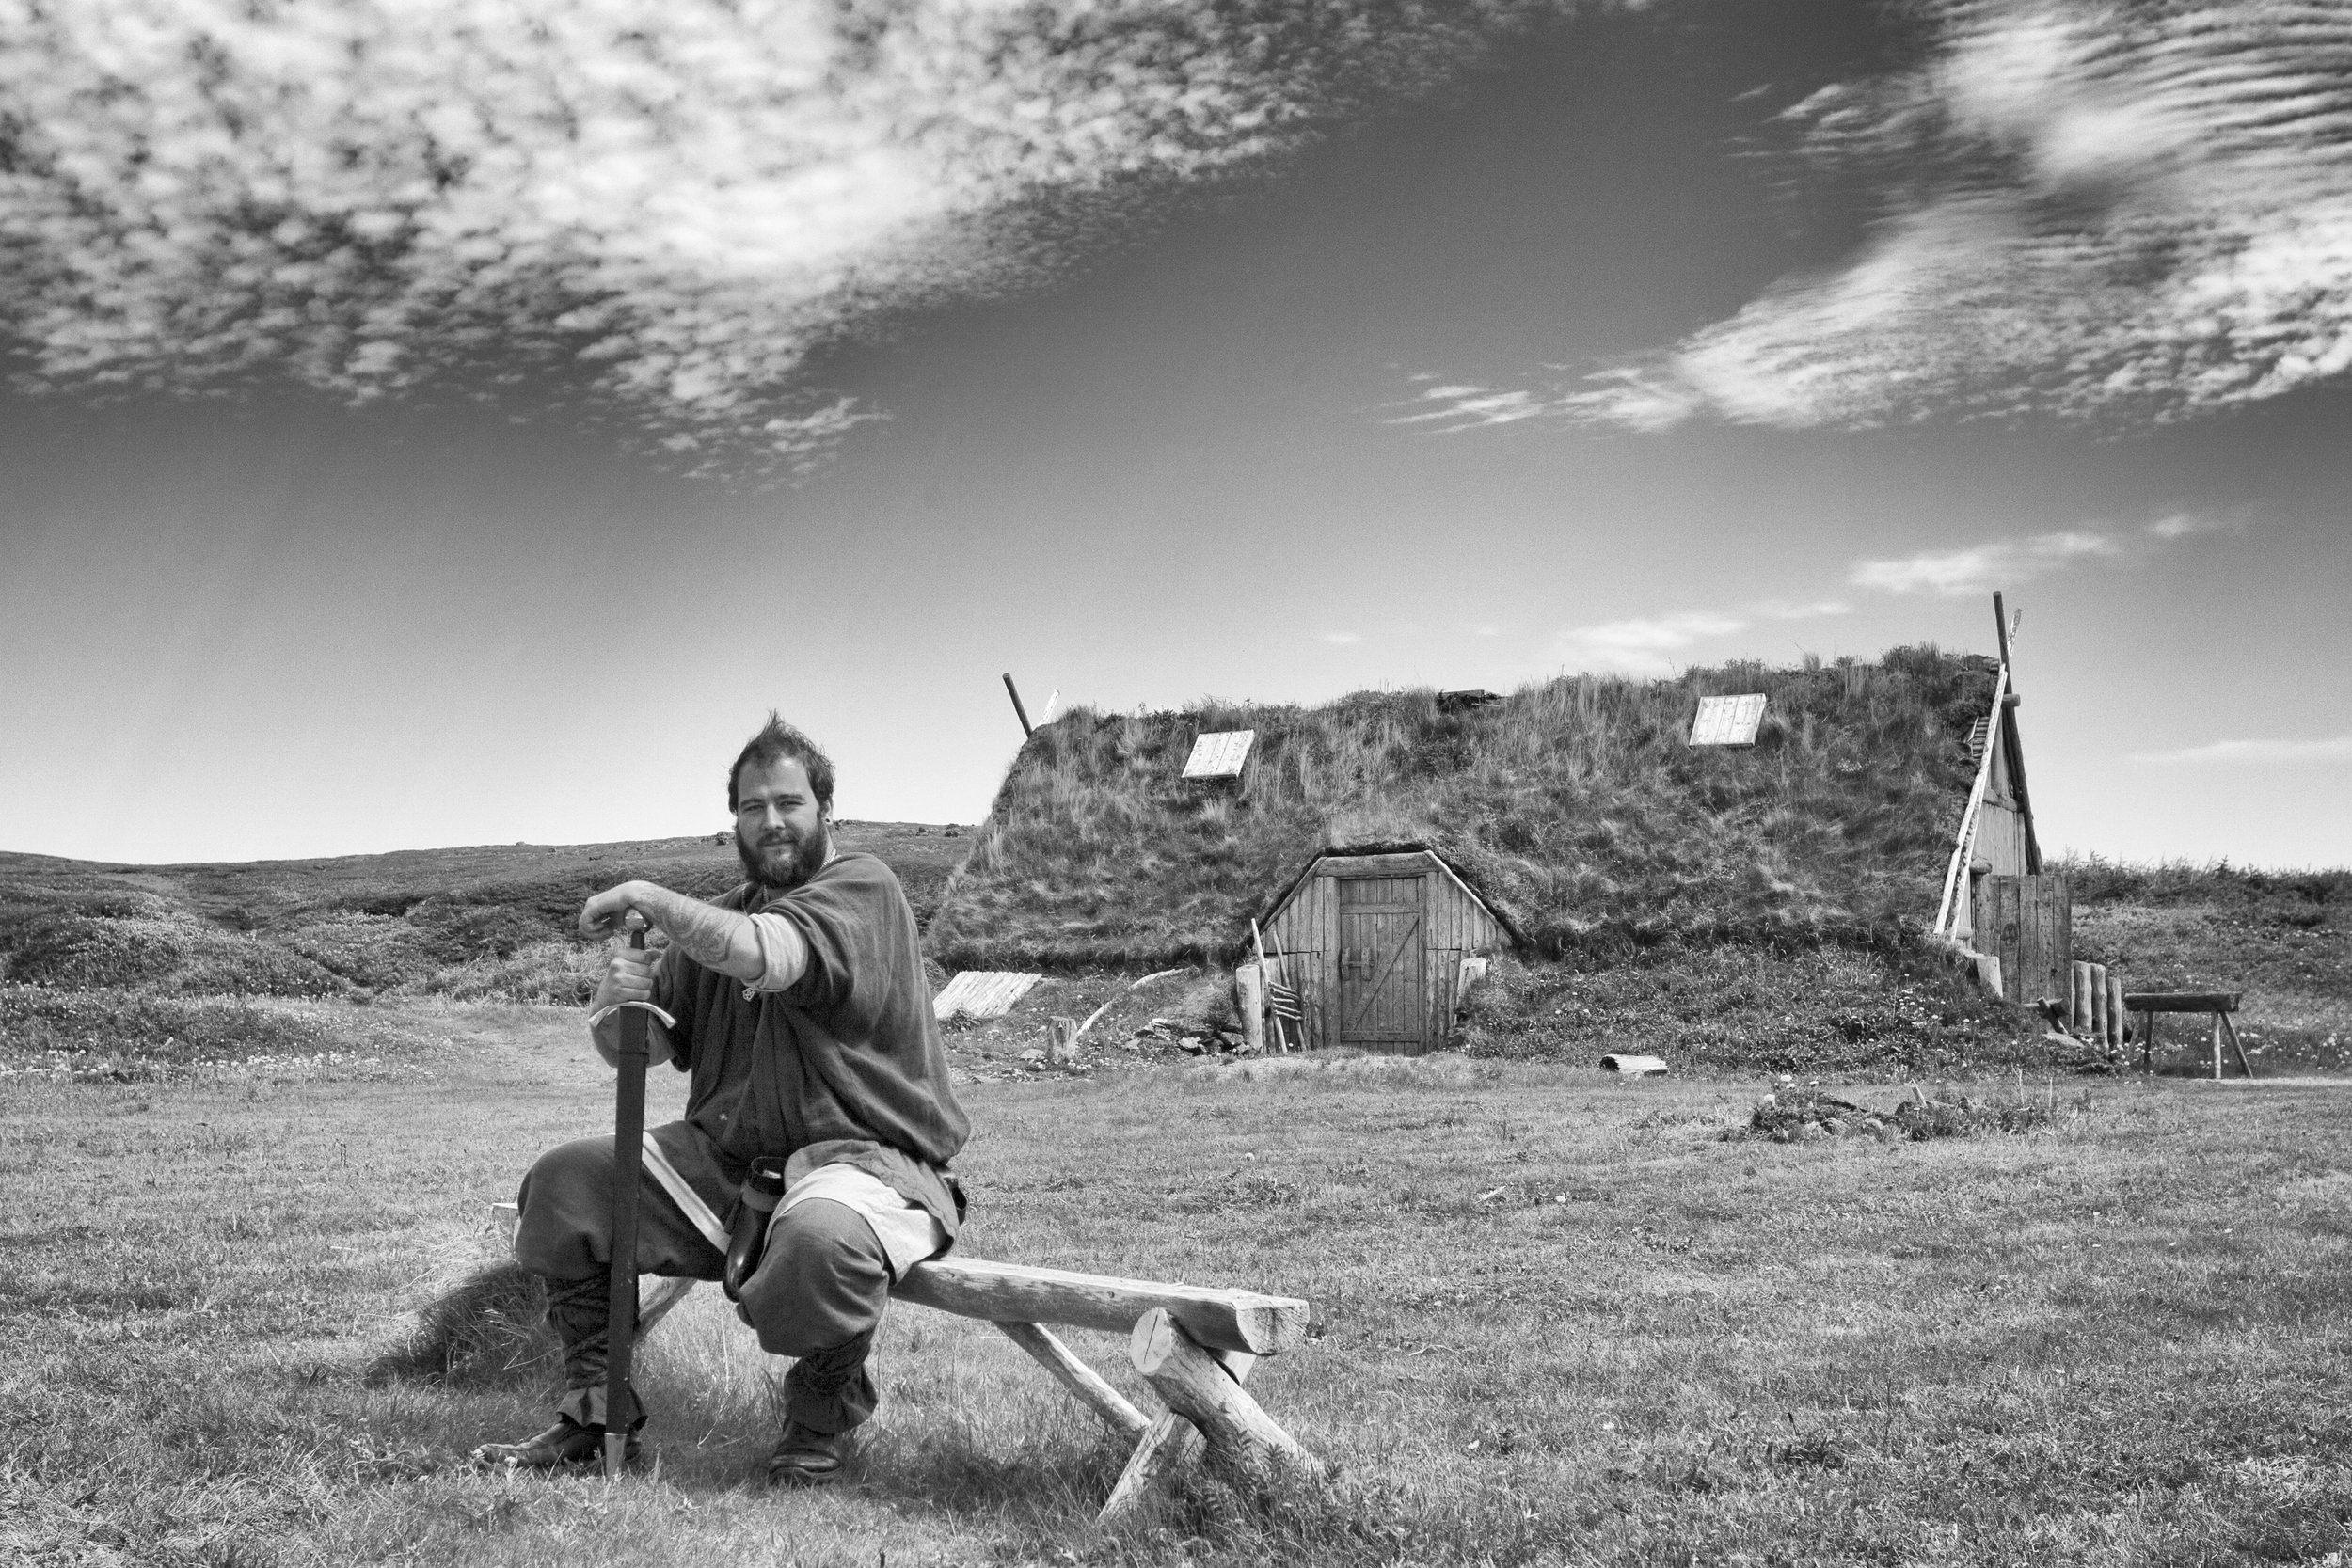 The Chieftain, at Norstead Viking Village - Newfoundland, Canada